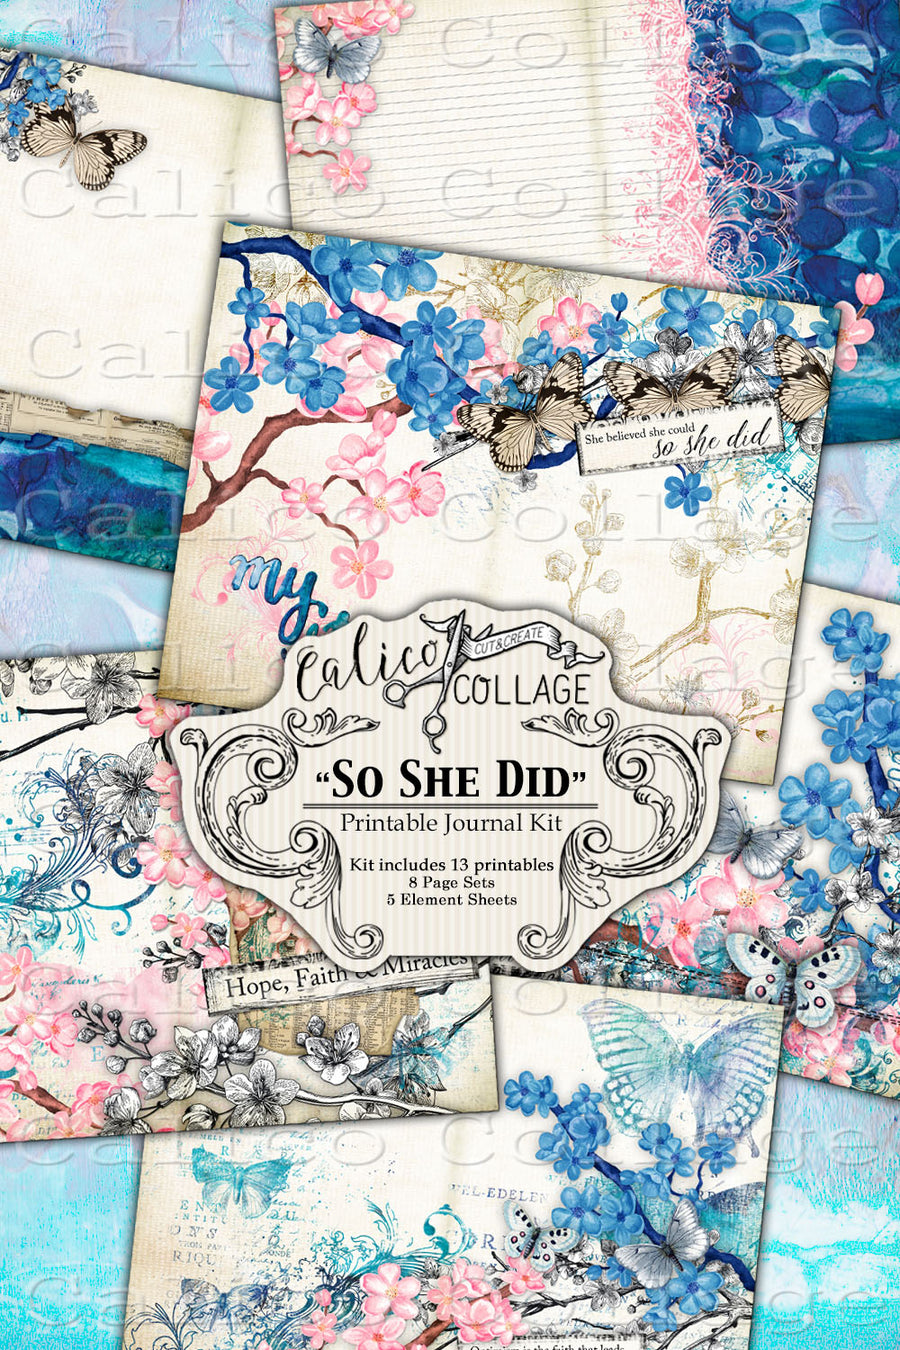 So She Did Junk Journal Kit